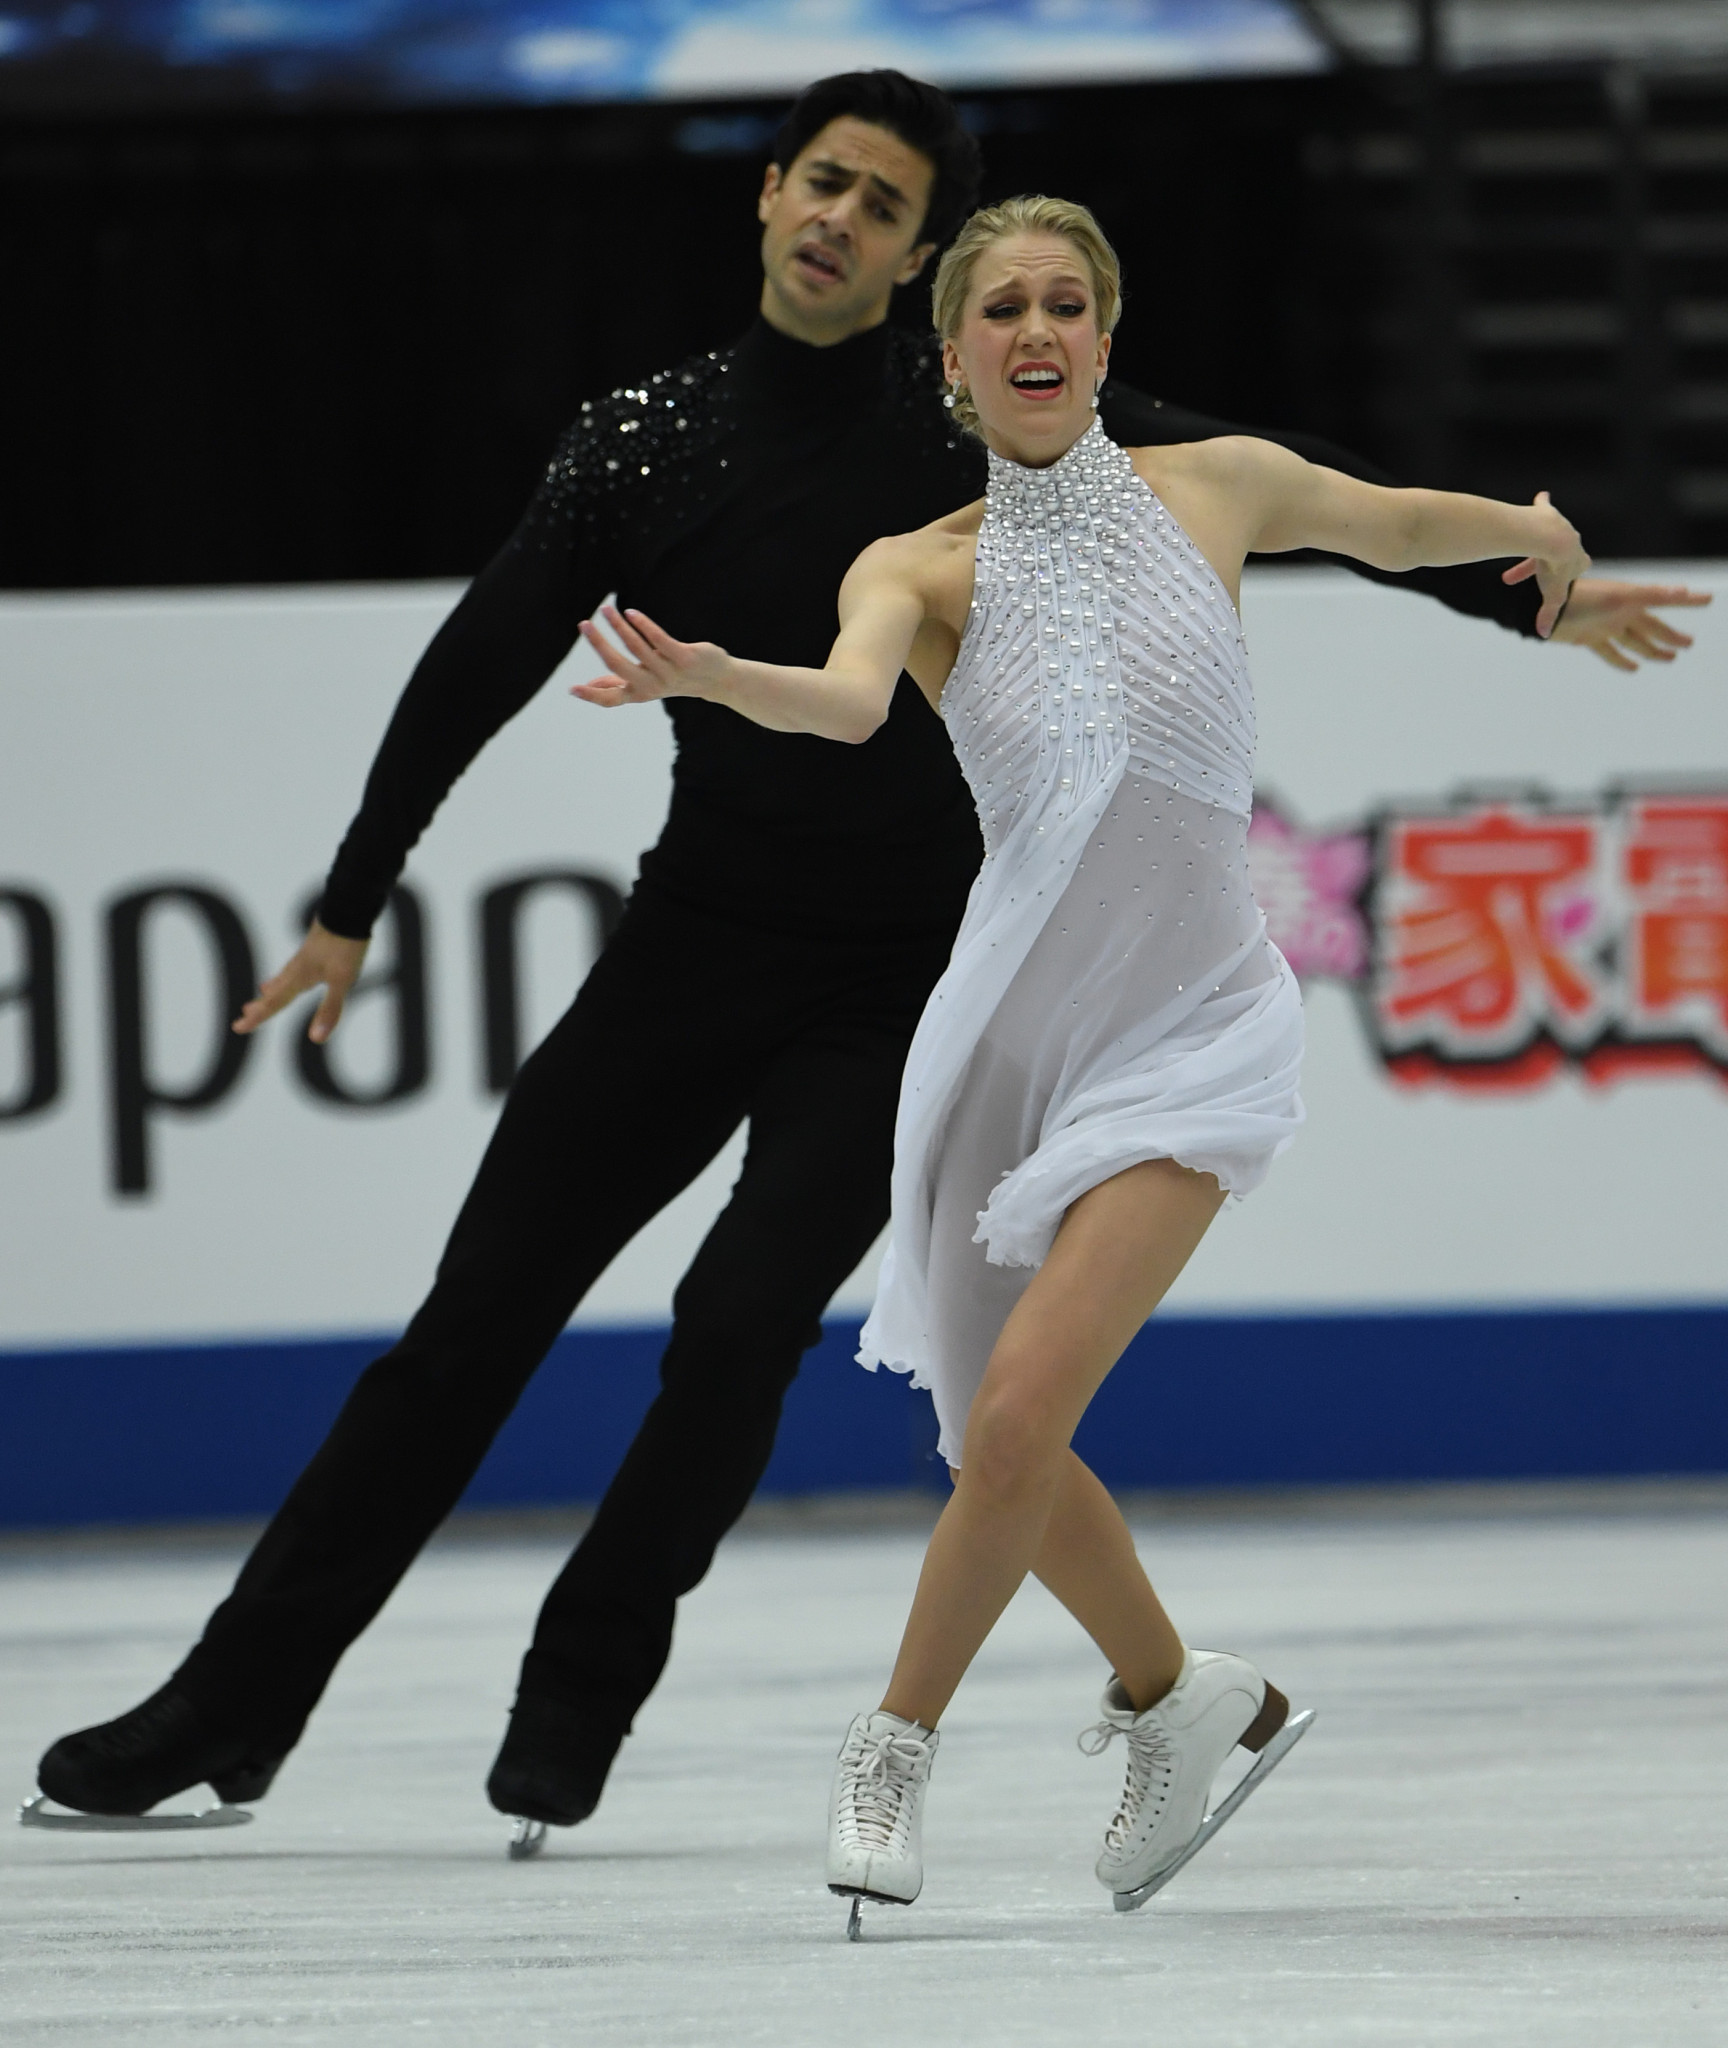 Canada's Weaver and Poje announce break from ice dancing